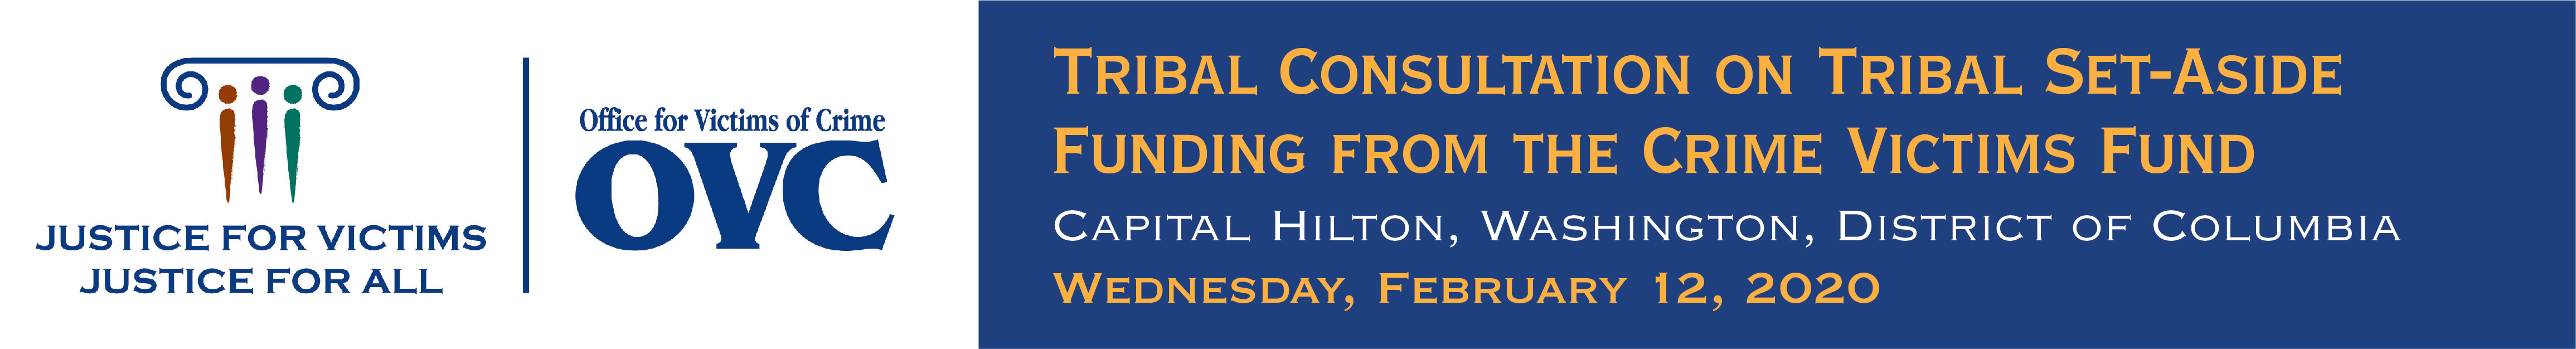 Tribal Consultation on Tribal Set-Aside Funding from the Crime Victims Fund